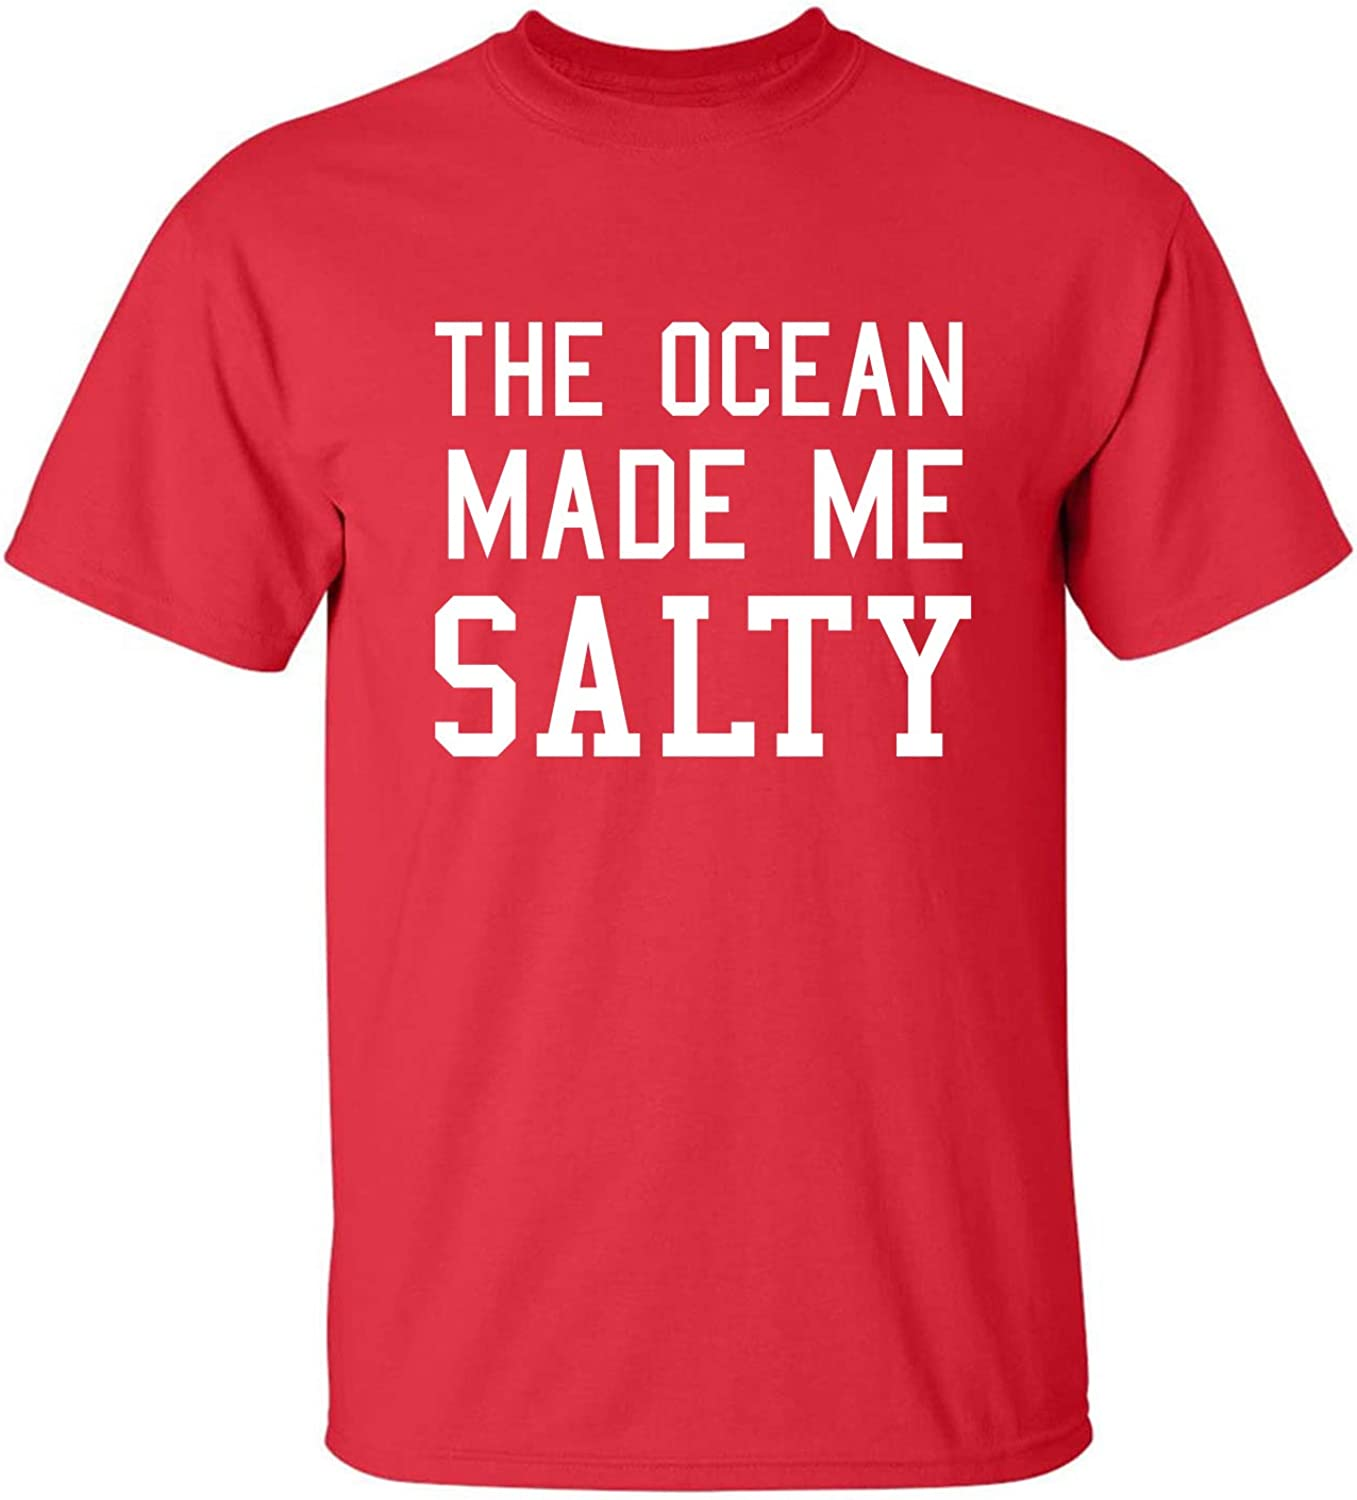 The Ocean Made Me Salty Adult Short Sleeve T-Shirt